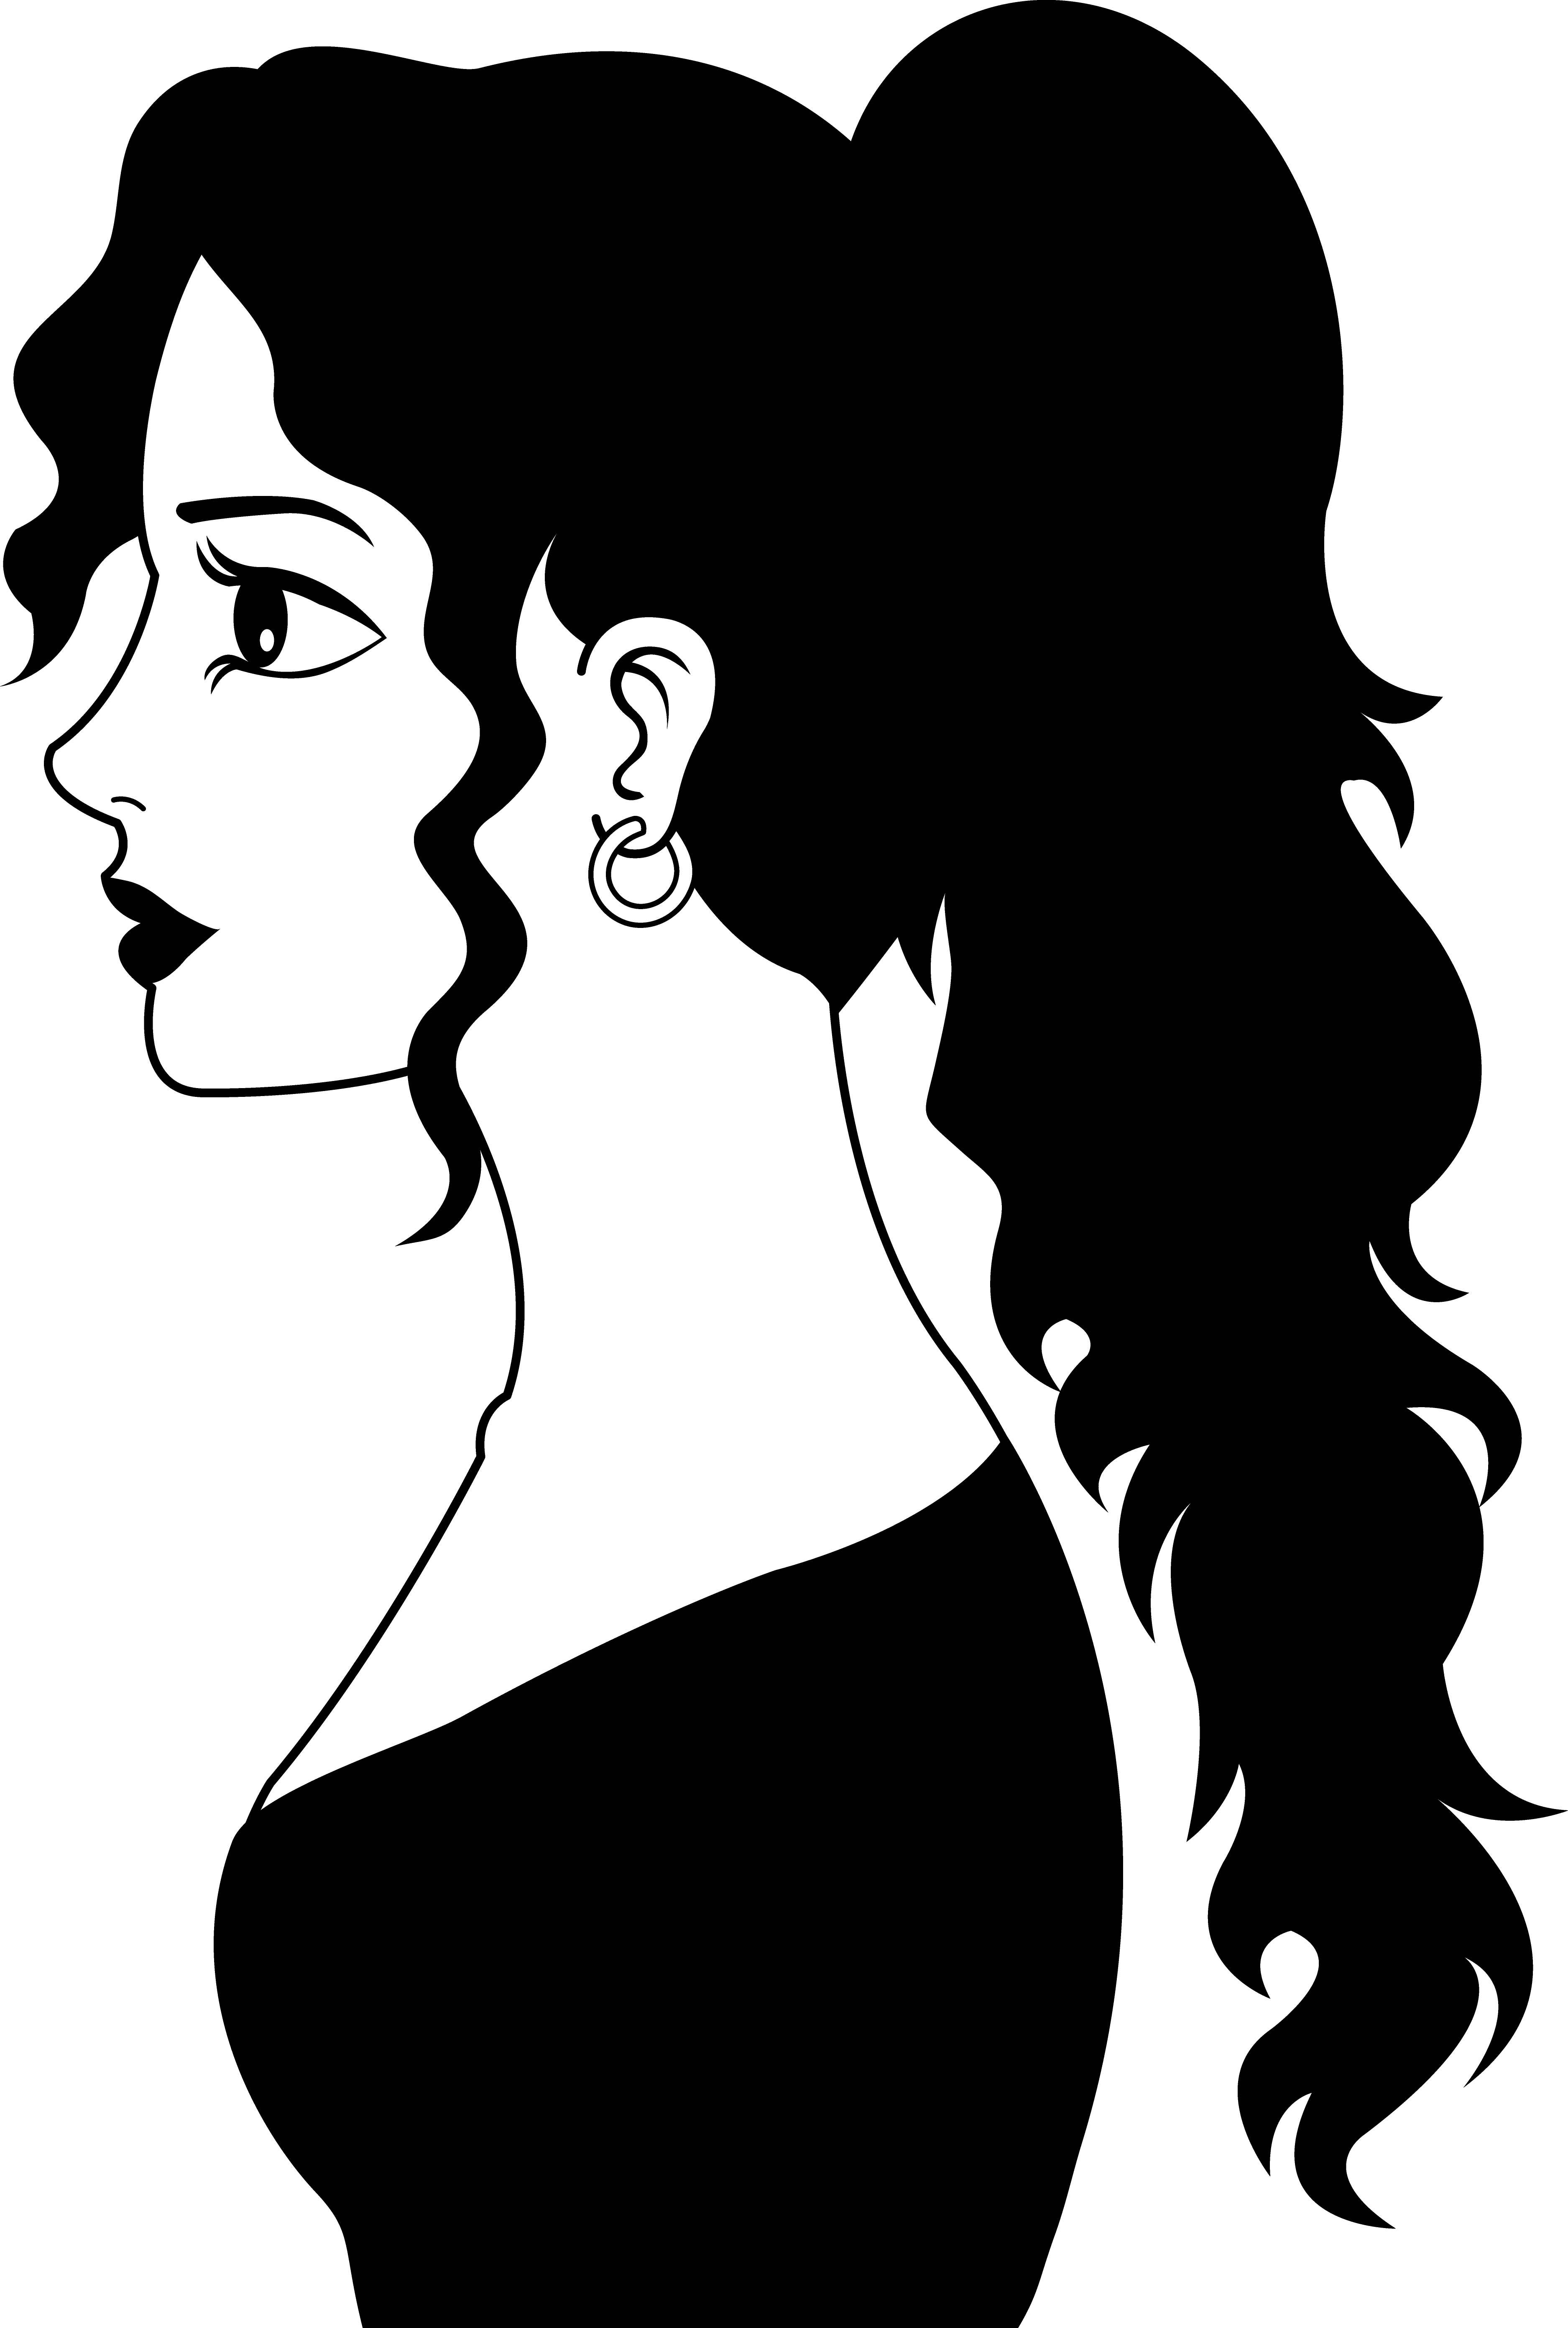 Woman clipart face long hair.